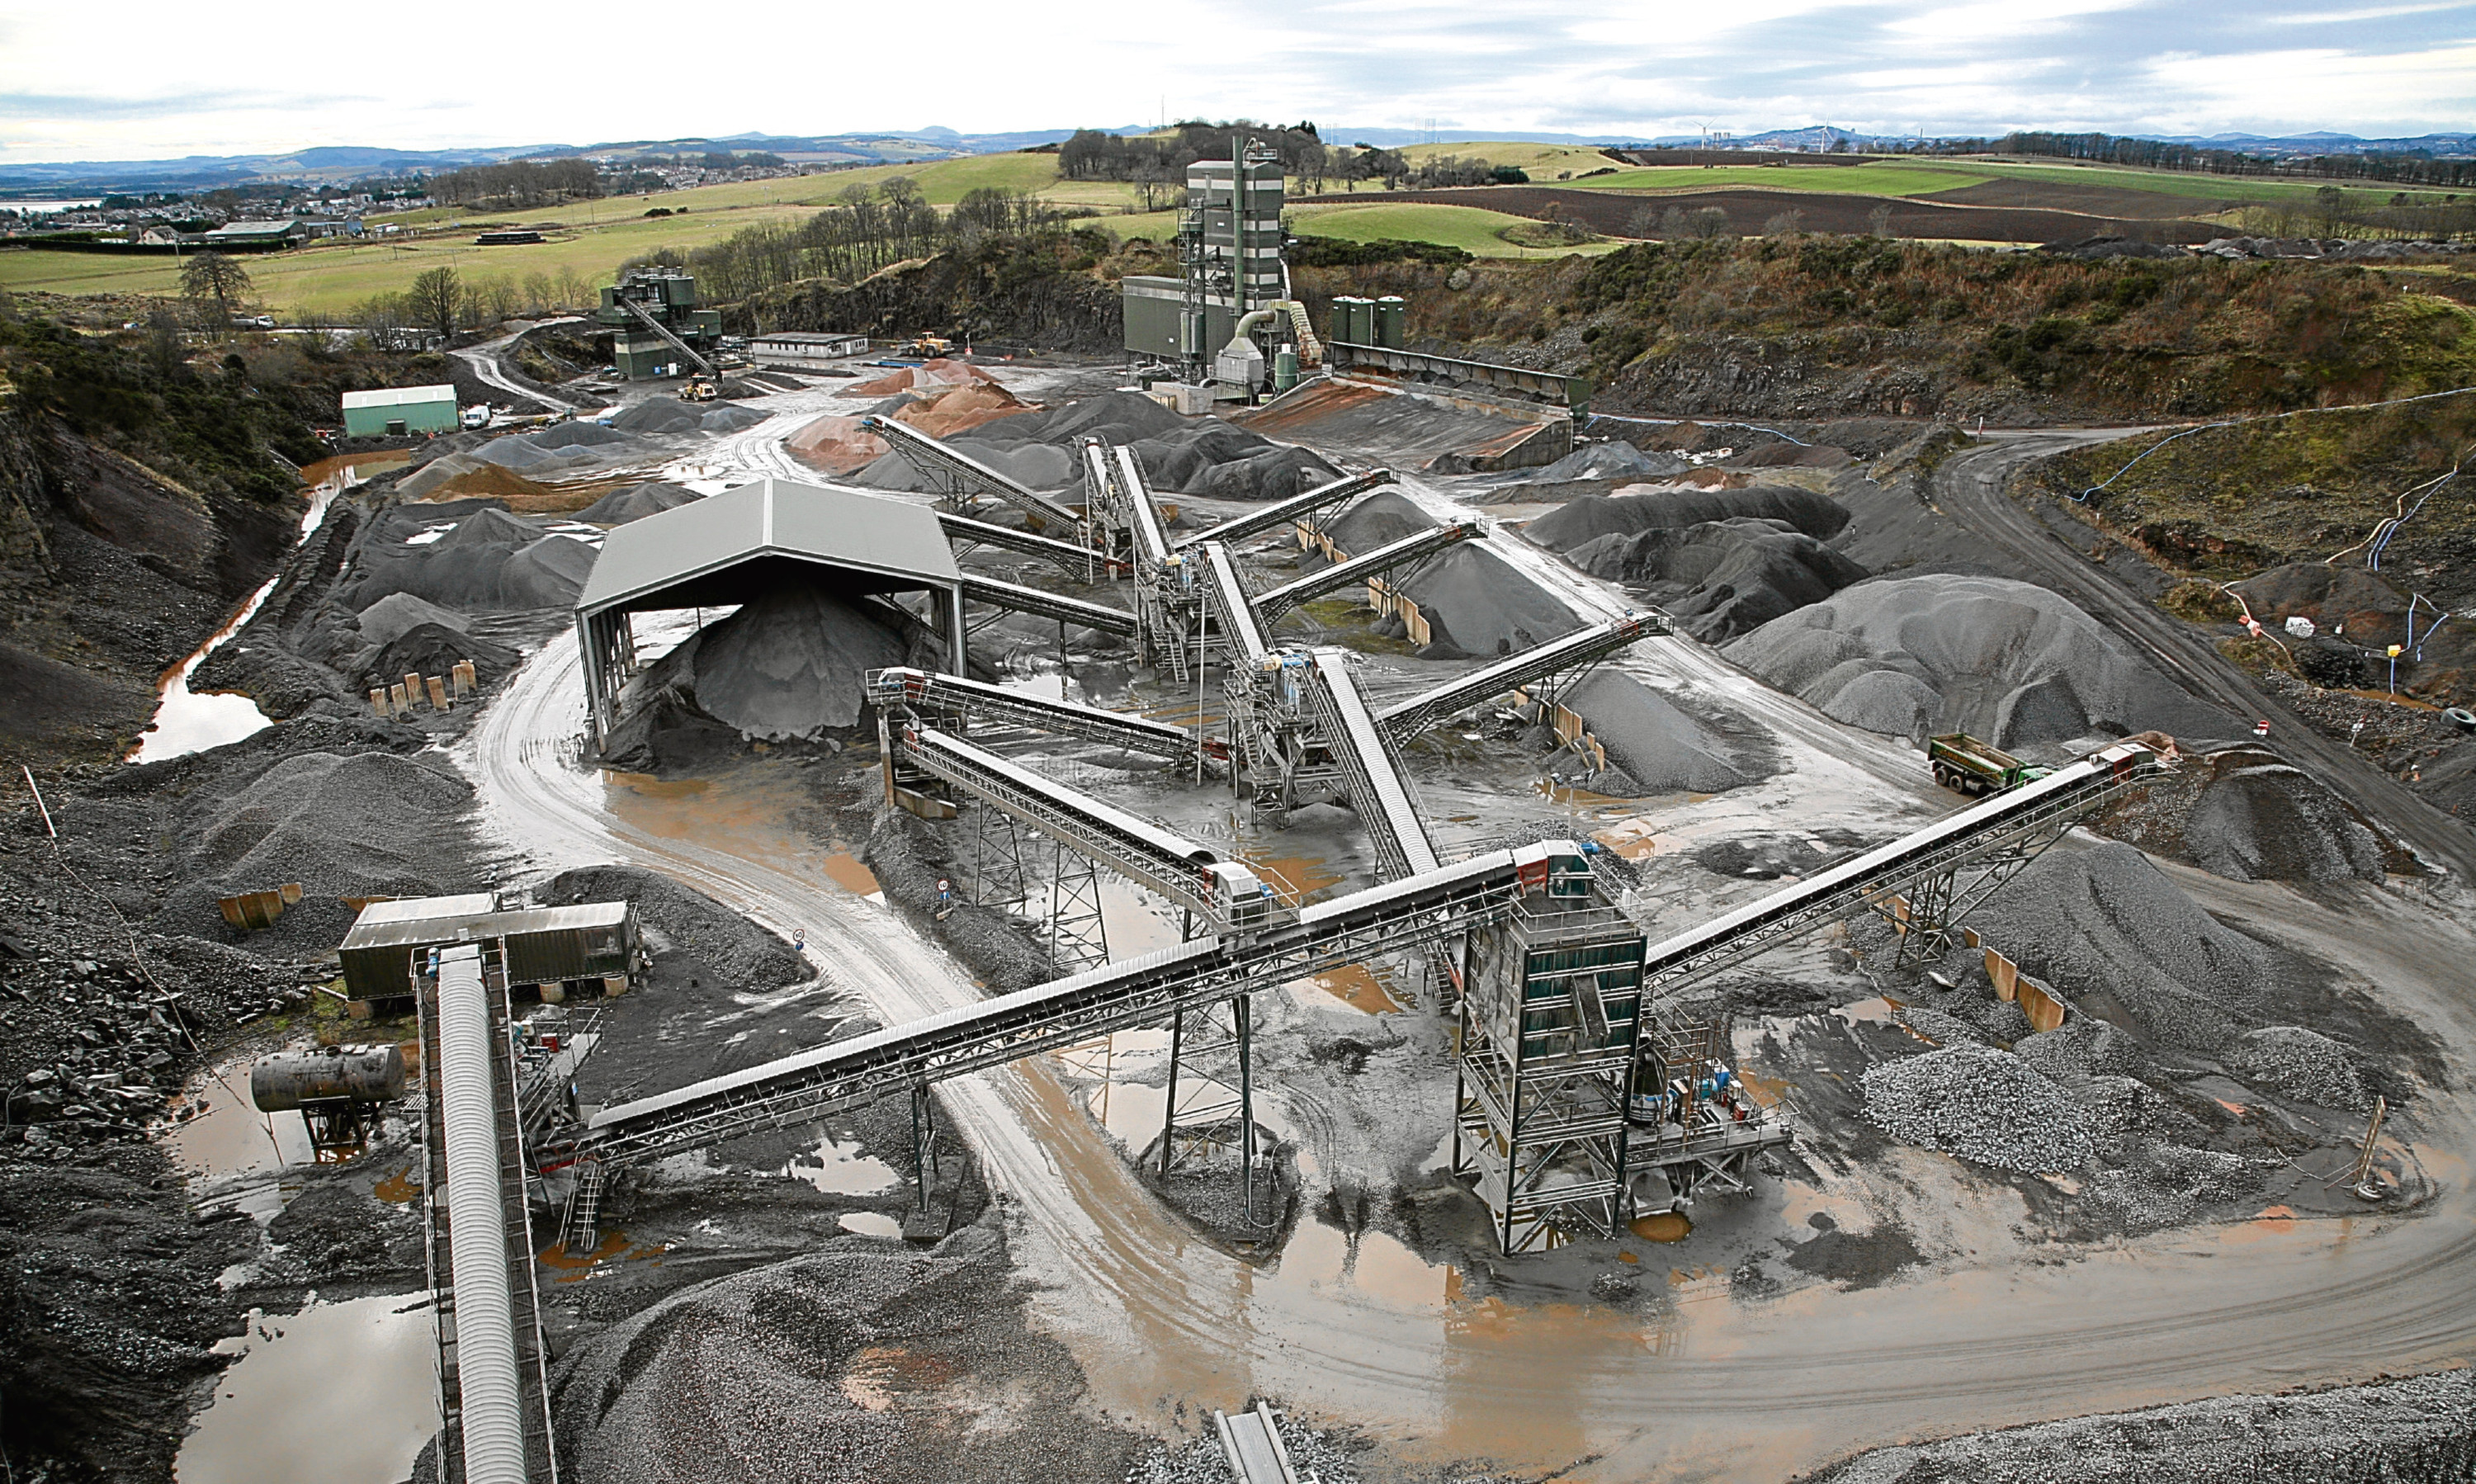 Breedon Northern's headquarters is based at Ethiebeaton quarry in Angus